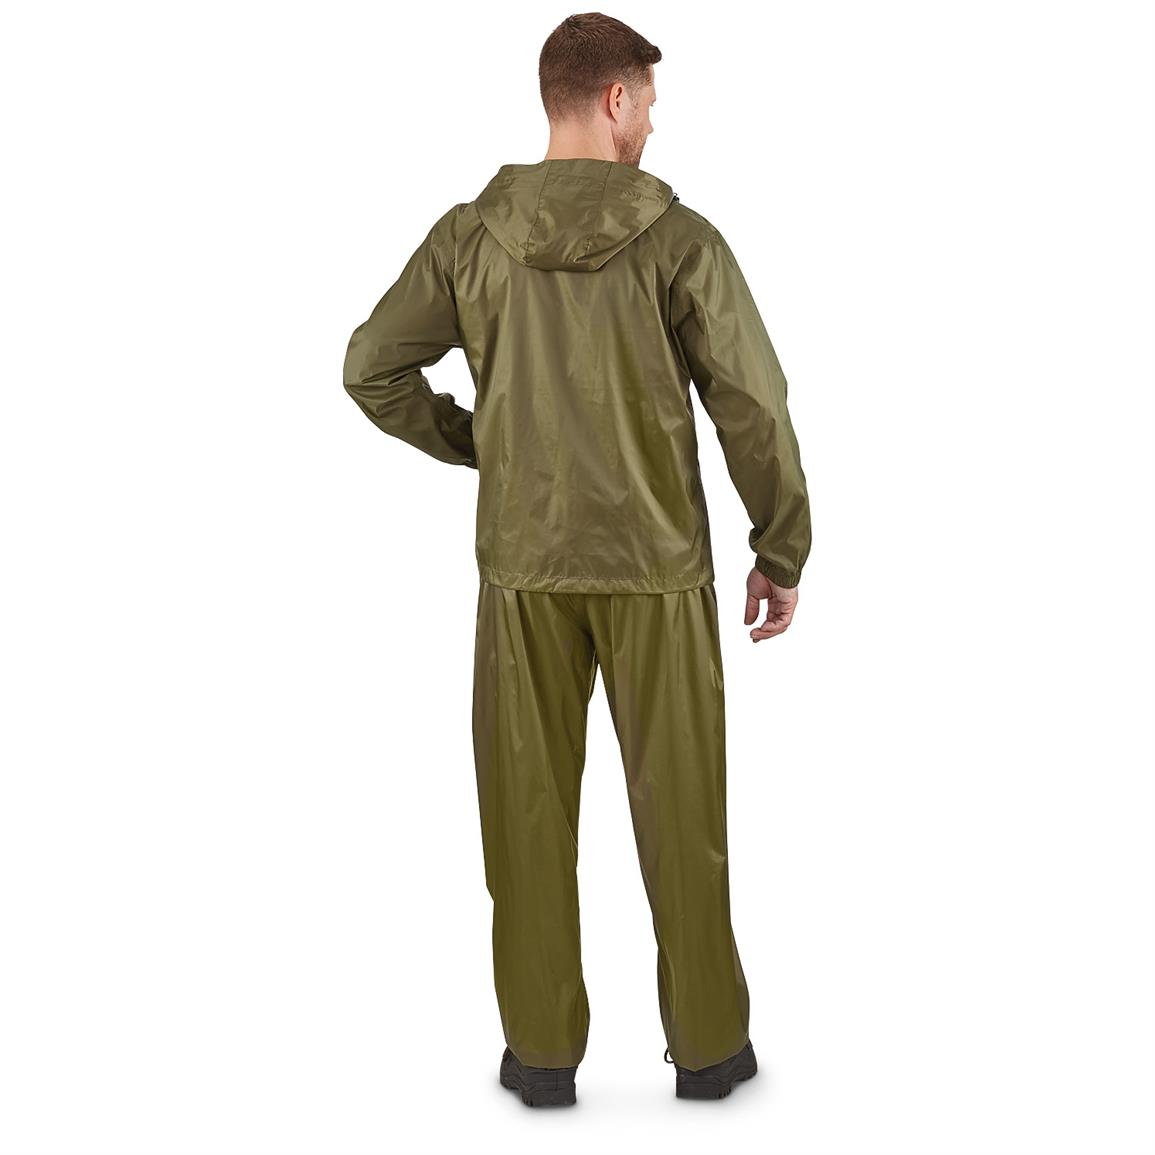 Guide Gear Men's Packable Rain Suit, Back Dark Green